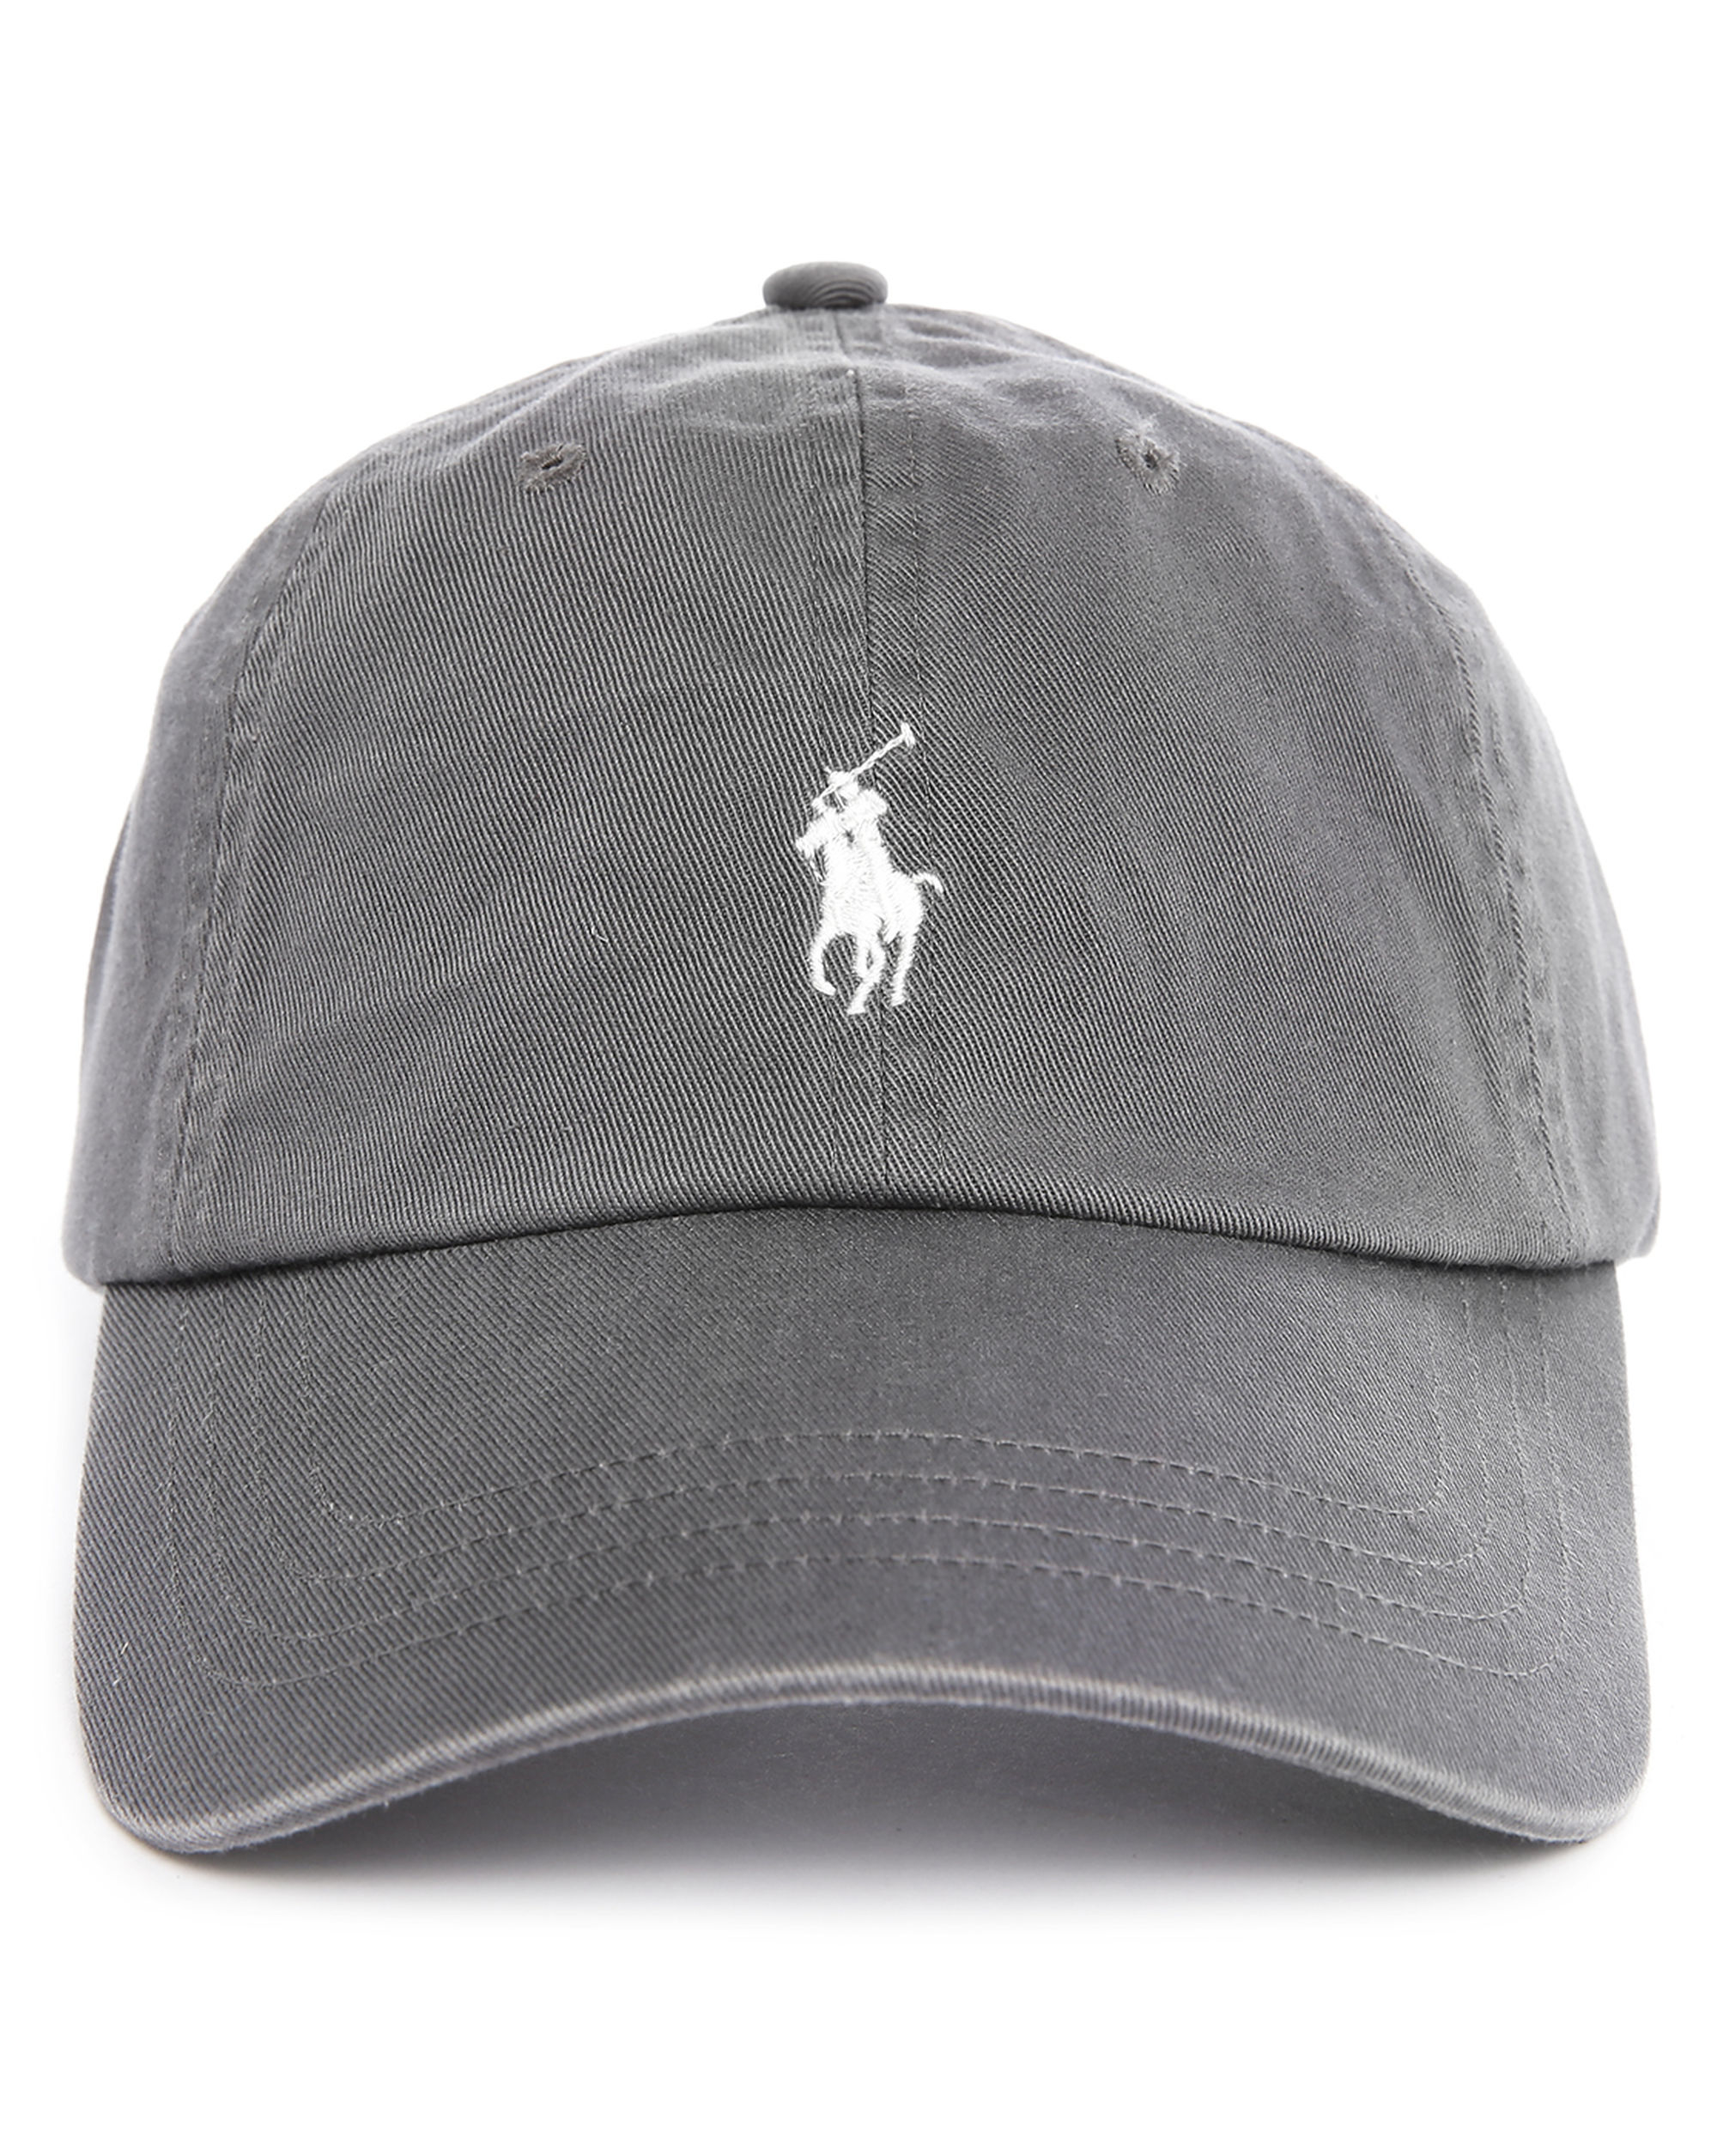 polo ralph lauren charcoal classic cap in gray for men lyst. Black Bedroom Furniture Sets. Home Design Ideas